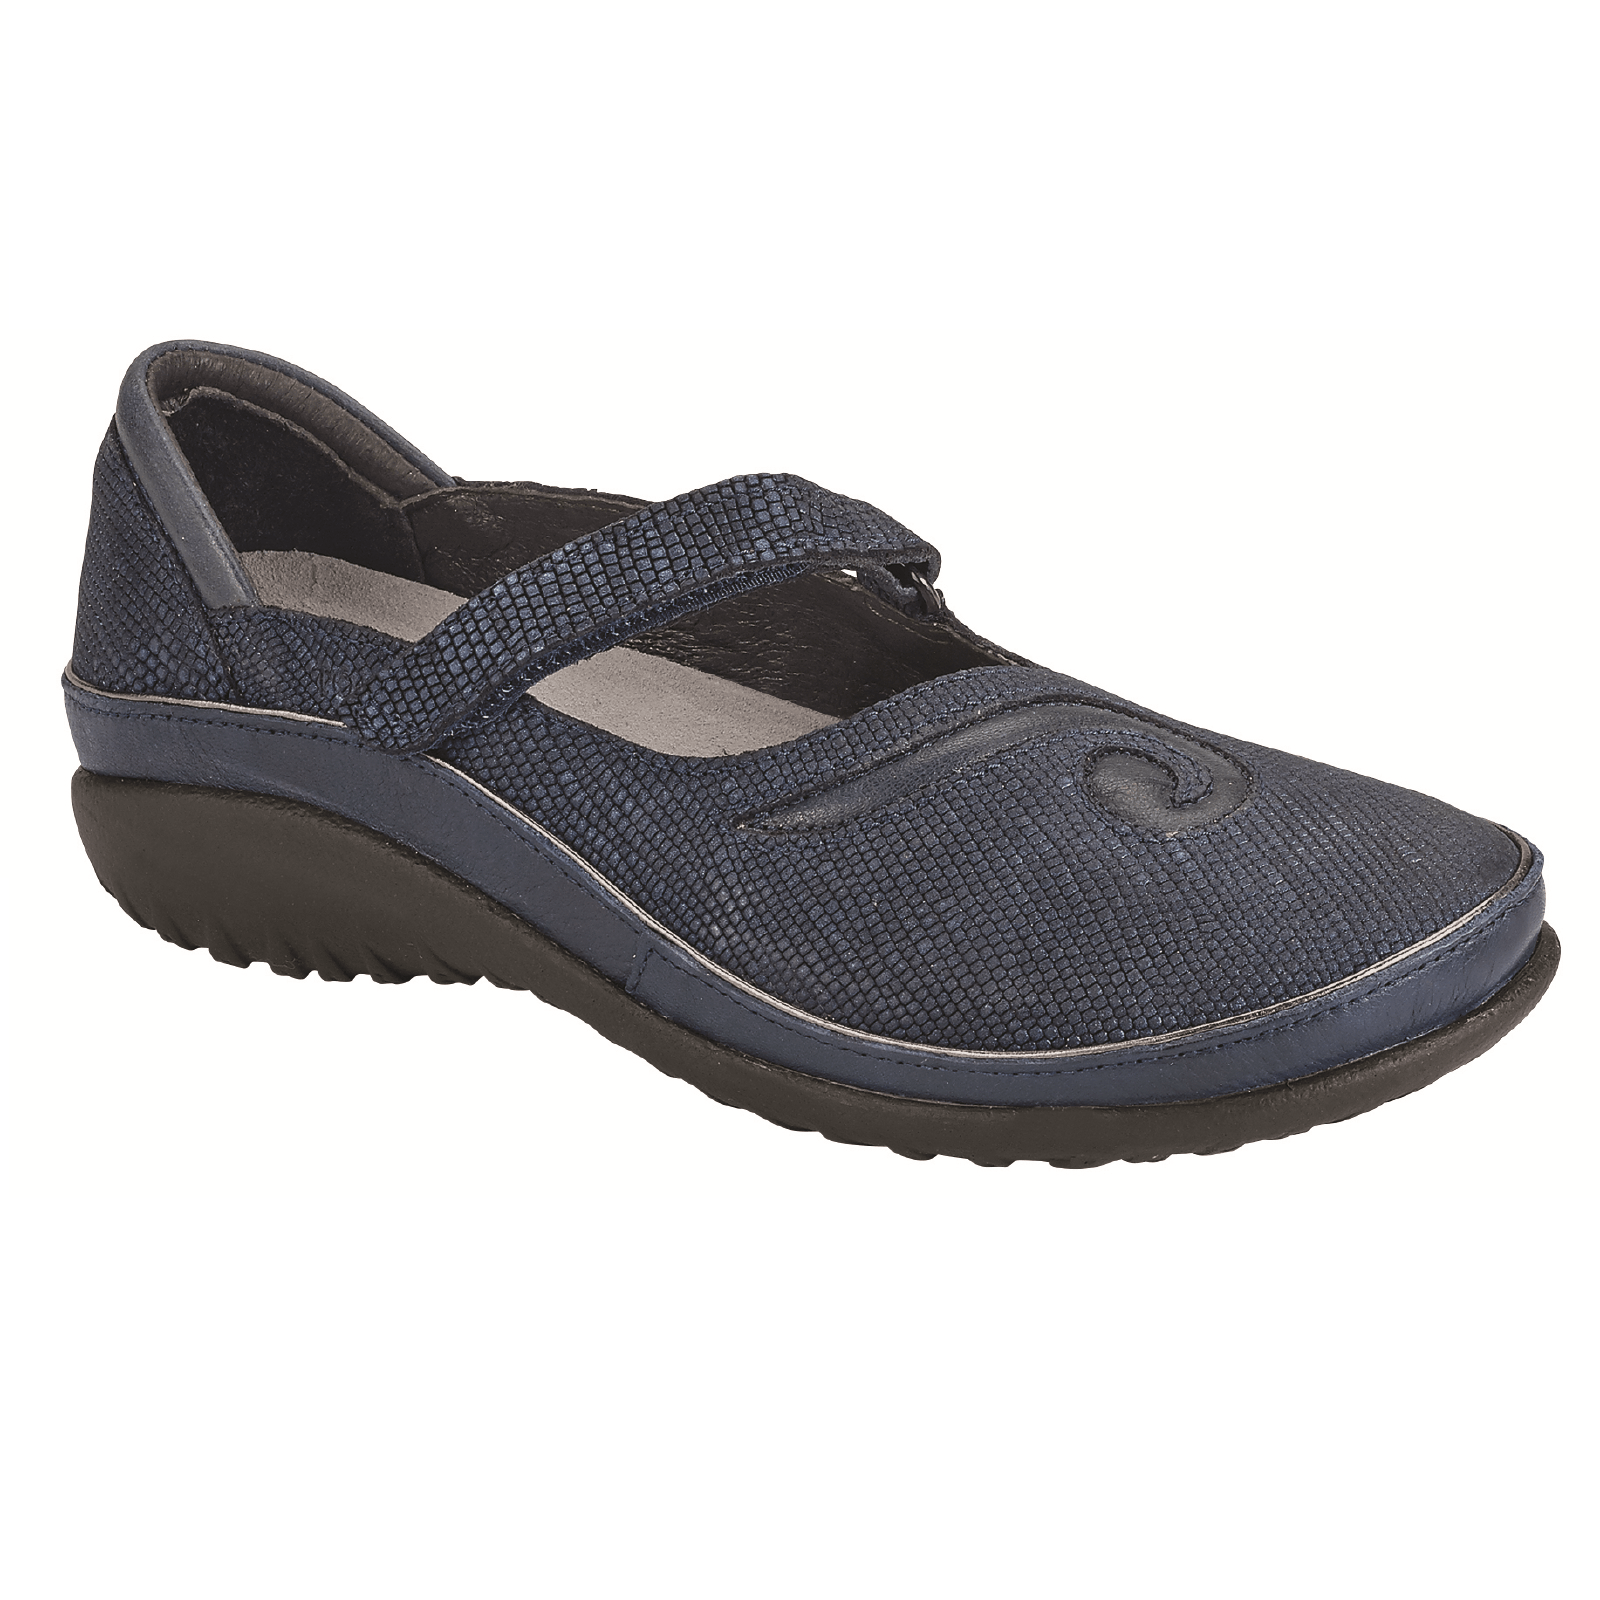 Naot Matai (11410) Women's Leather Mary Jane Shoe